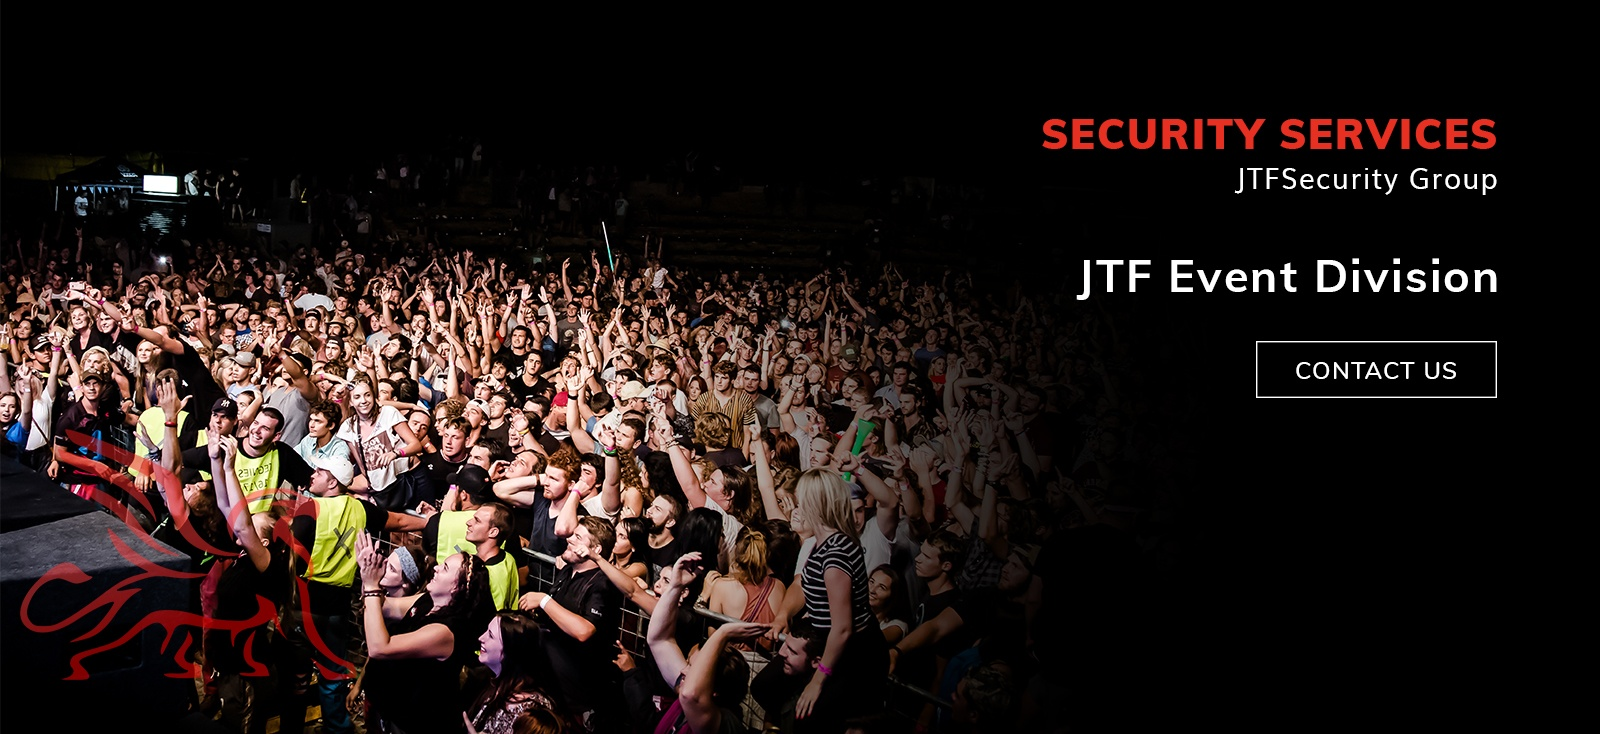 Patrol Security Guard Services Nanaimo by JTFSecurity Group